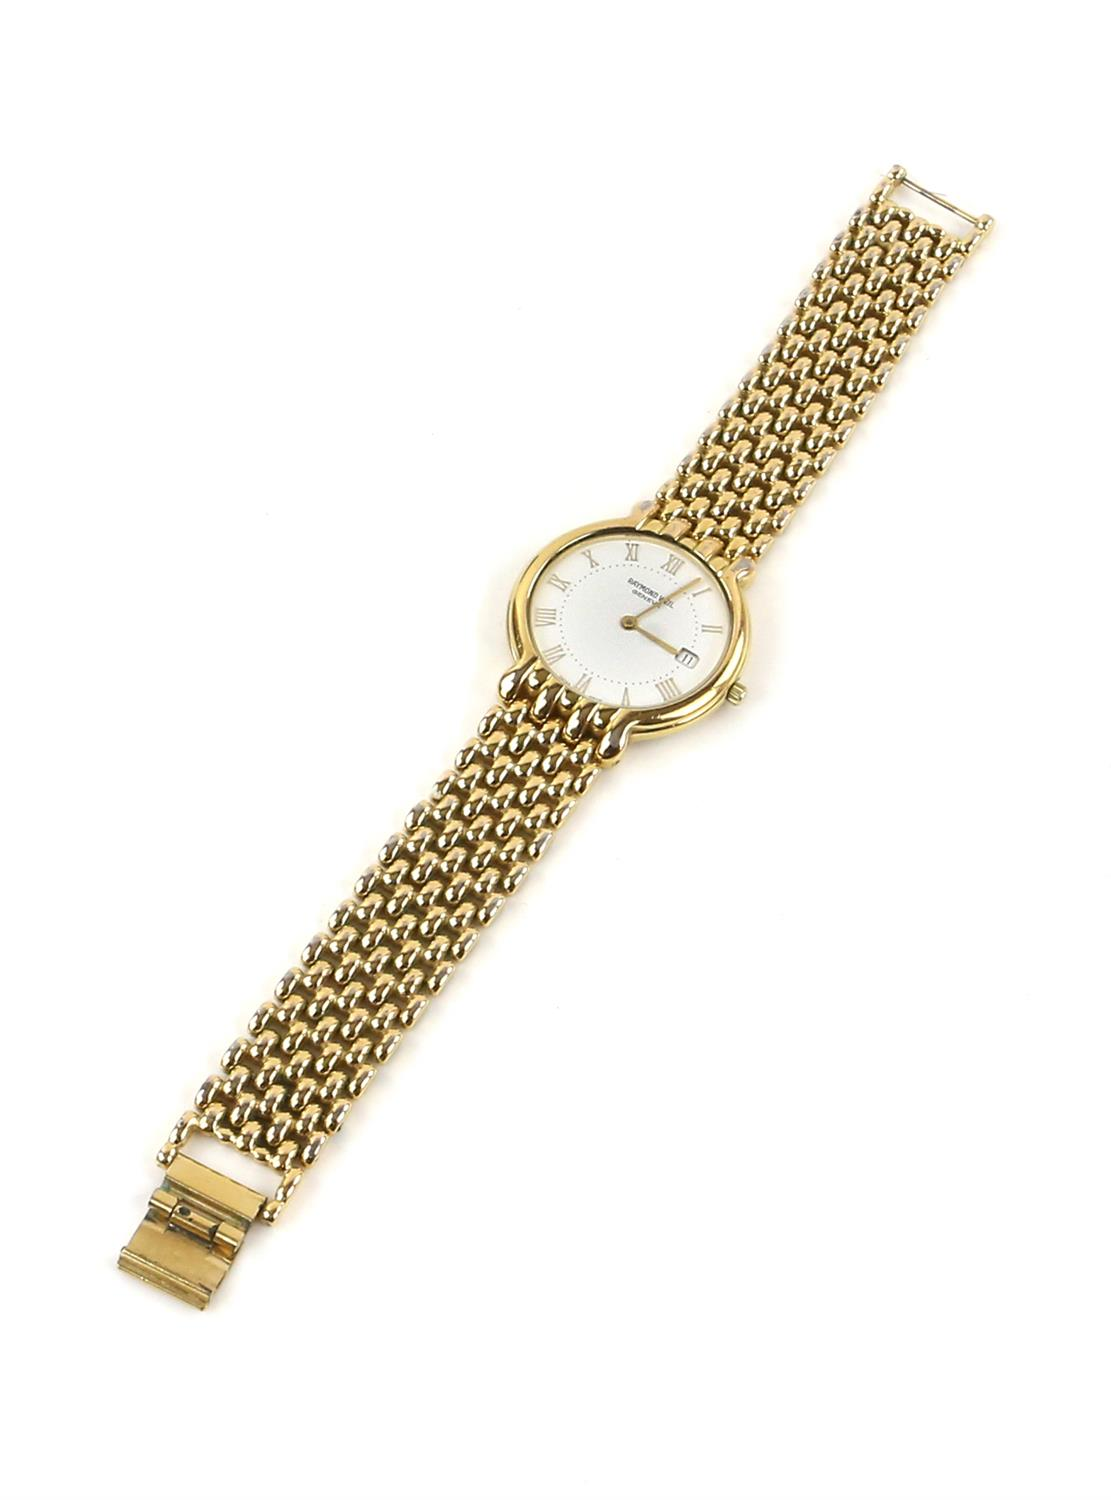 Raymond Weil, A Gentleman's reference 6549 dress watch with white enamel dial, baton hour markers, - Image 2 of 11